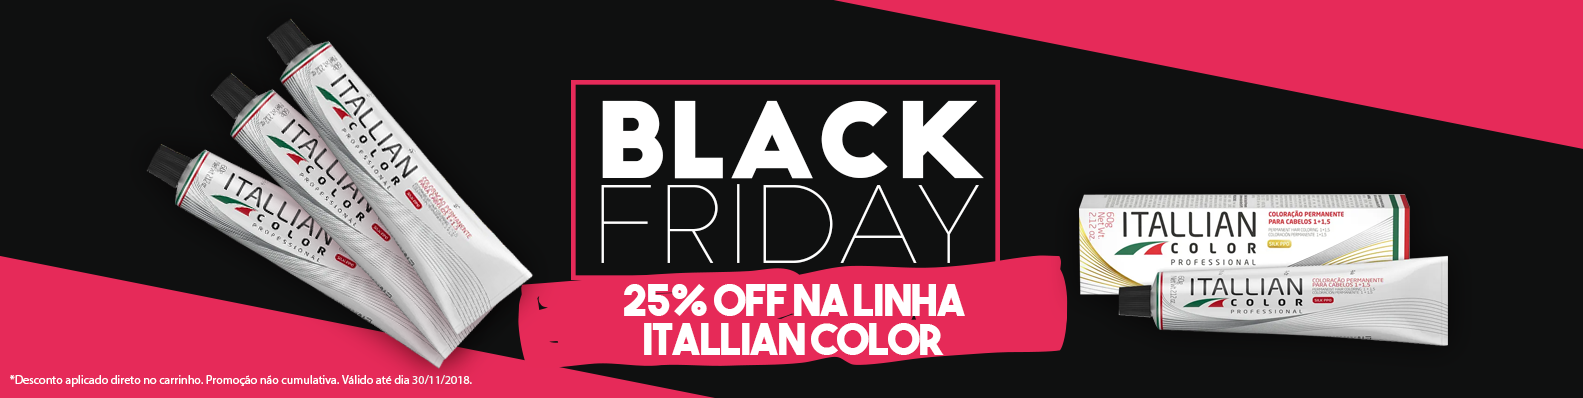 Black Friday Italian Color